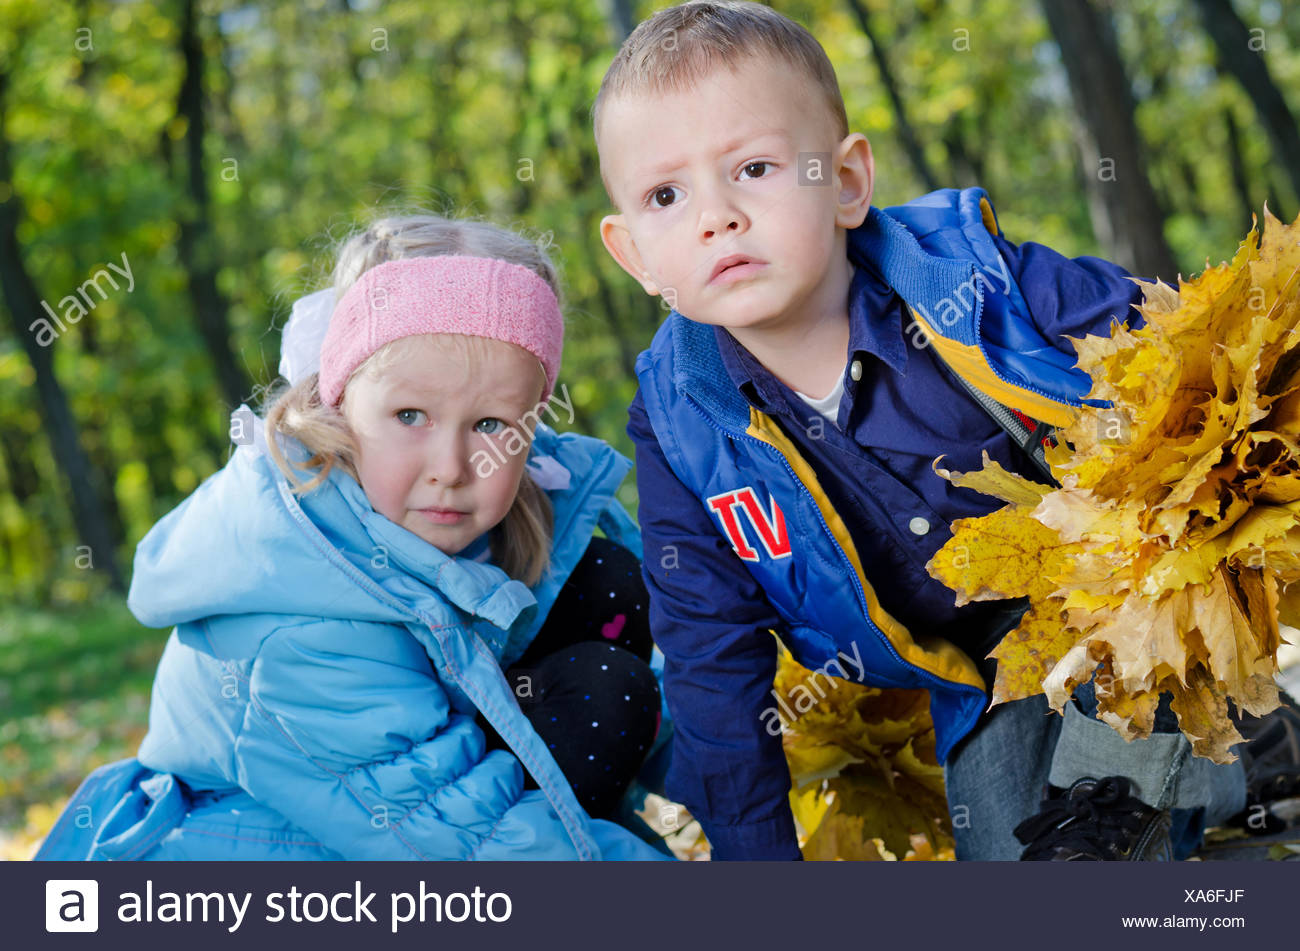 Young Children Playing in an Autumn Woodland - Stock Image